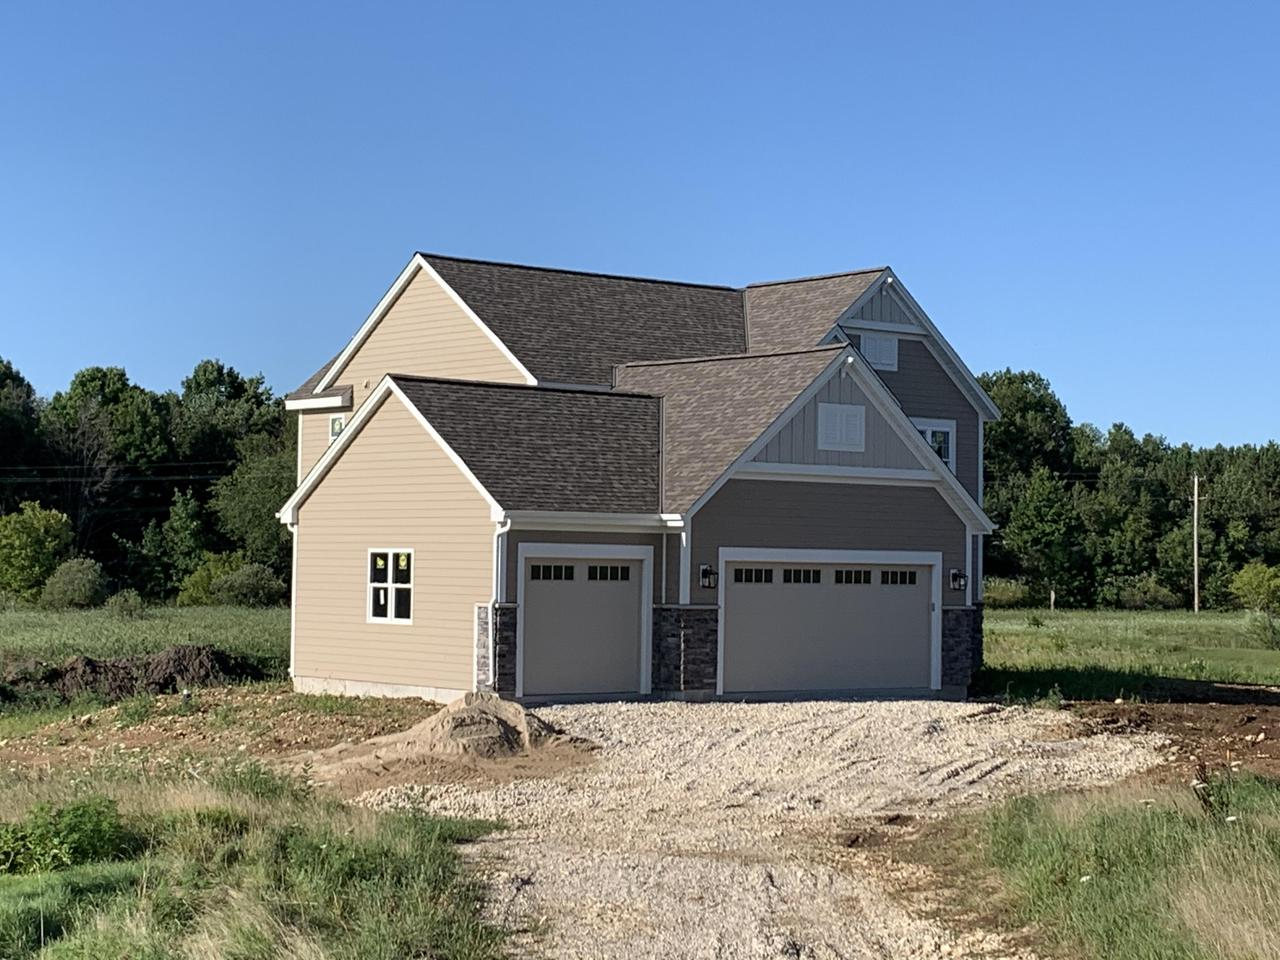 NEW CONSTRUCTION by Stepping Stone homes. The Jayden model offers lots of space in an anything but traditional two story! You'll find 4 BRs up & a den/office option on the main floor. Spacious MBR w/private MBA & large walk in closet. Open concept kitchen/living room w/electric fireplace and patio door off dining area. 2x6 exterior framing and amazing upgrades like soft close dovetail cabinetry, quartz and marble counter tops, double sinks in the bathrooms, upgraded flooring, 8 ft GA doors & more! This home comes equipped with Smart Home Technology, including integrated lighting, door locks, ecobee smart thermostat, video doorbell, Lift Master garage door, all of which you can control from your mobile device. Smart home technology at it's best.